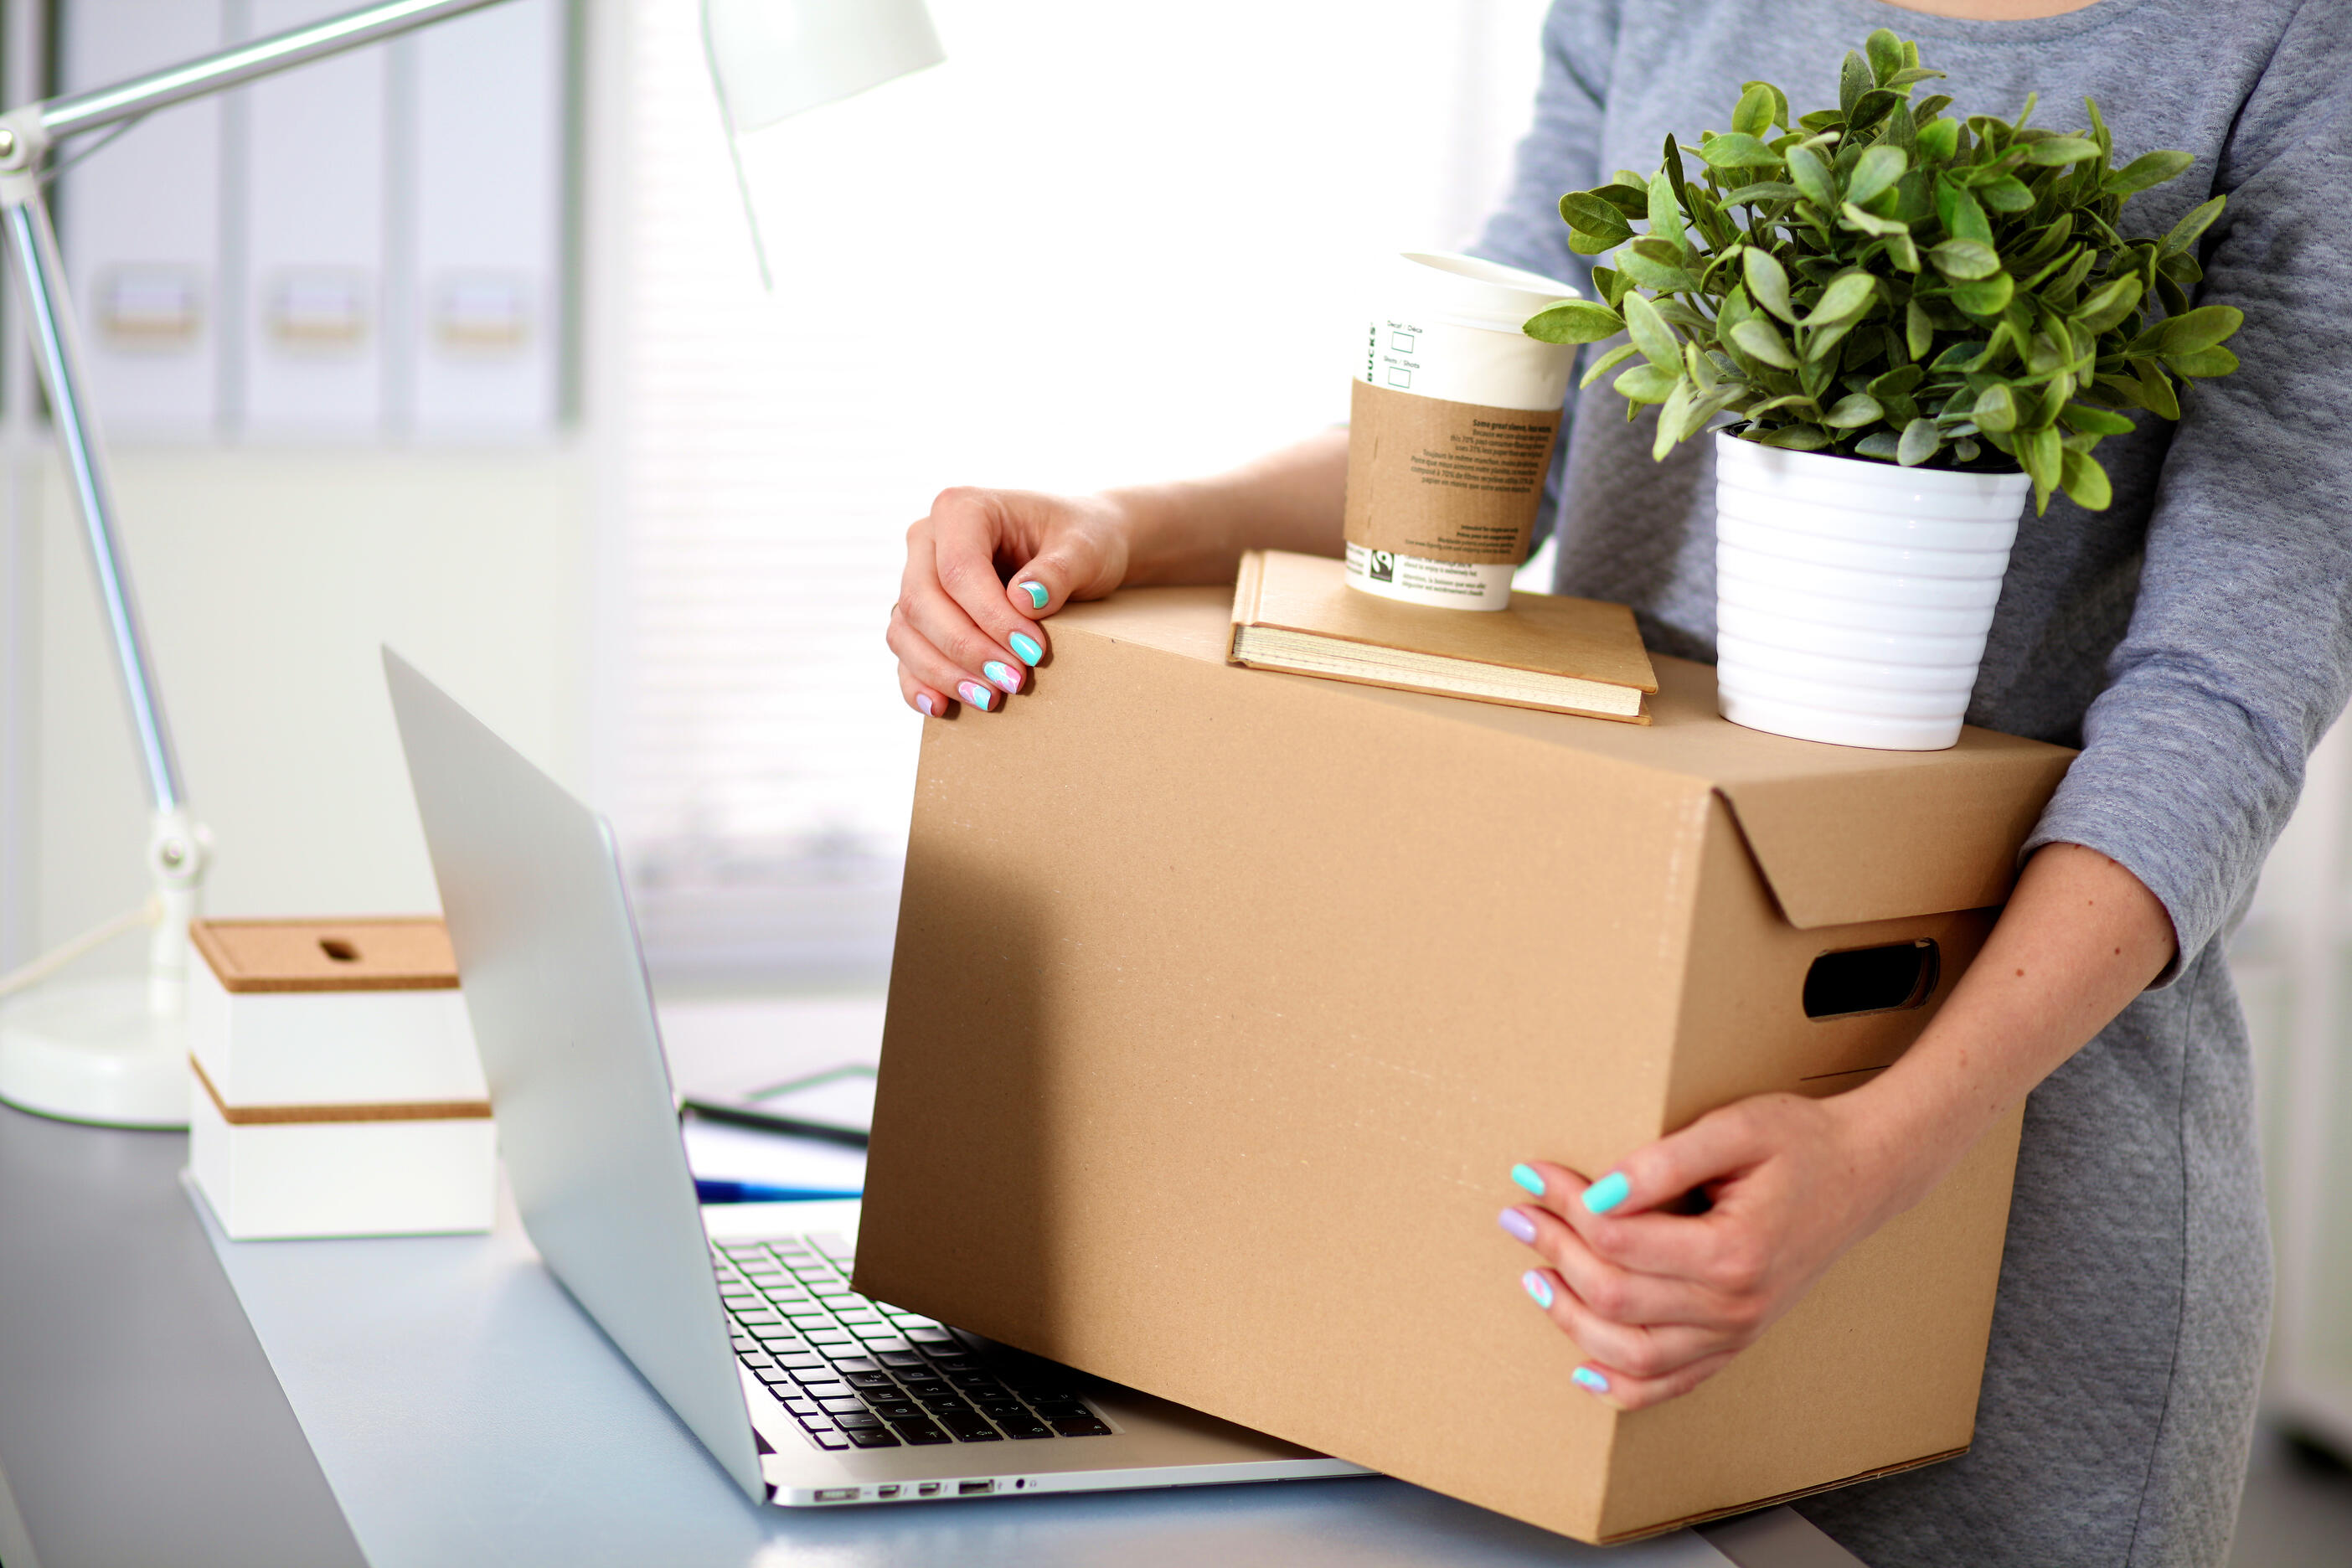 How to Make an Office Move More Fun